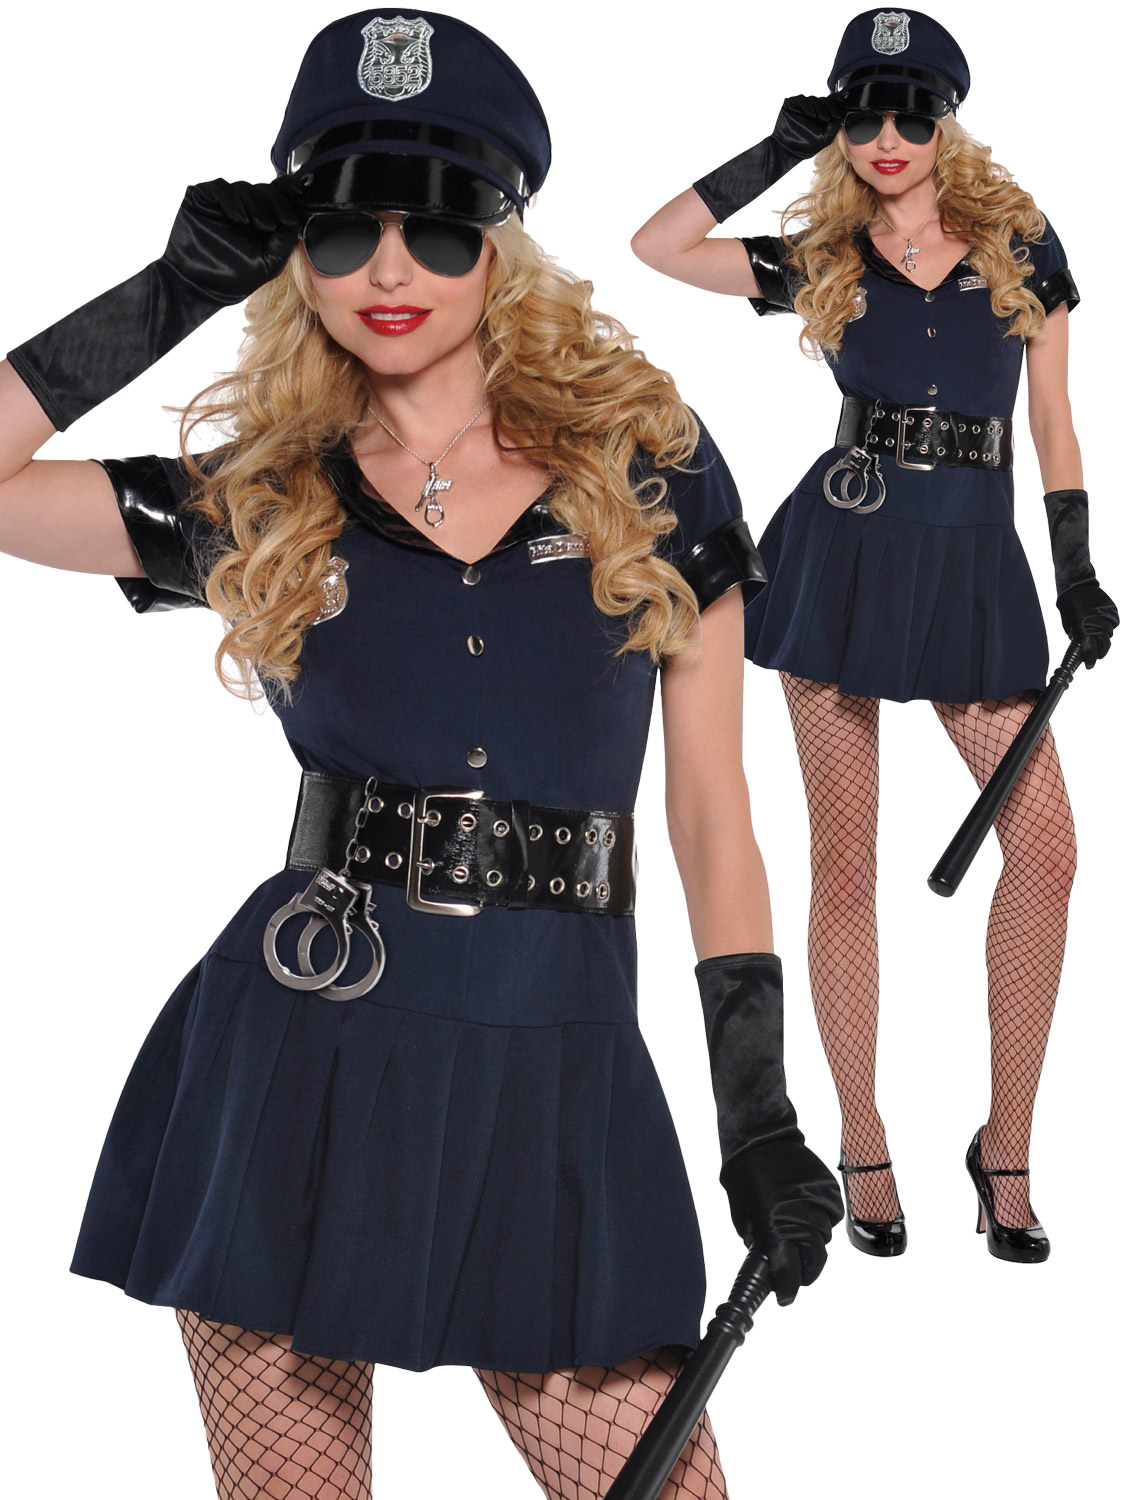 Ladies police officer costume adults sexy cop wpc fancy dress transform yourself into a sexy cop with this ladies police officer costume ideal if you are going to a uniform themed party or even a hen party solutioingenieria Images